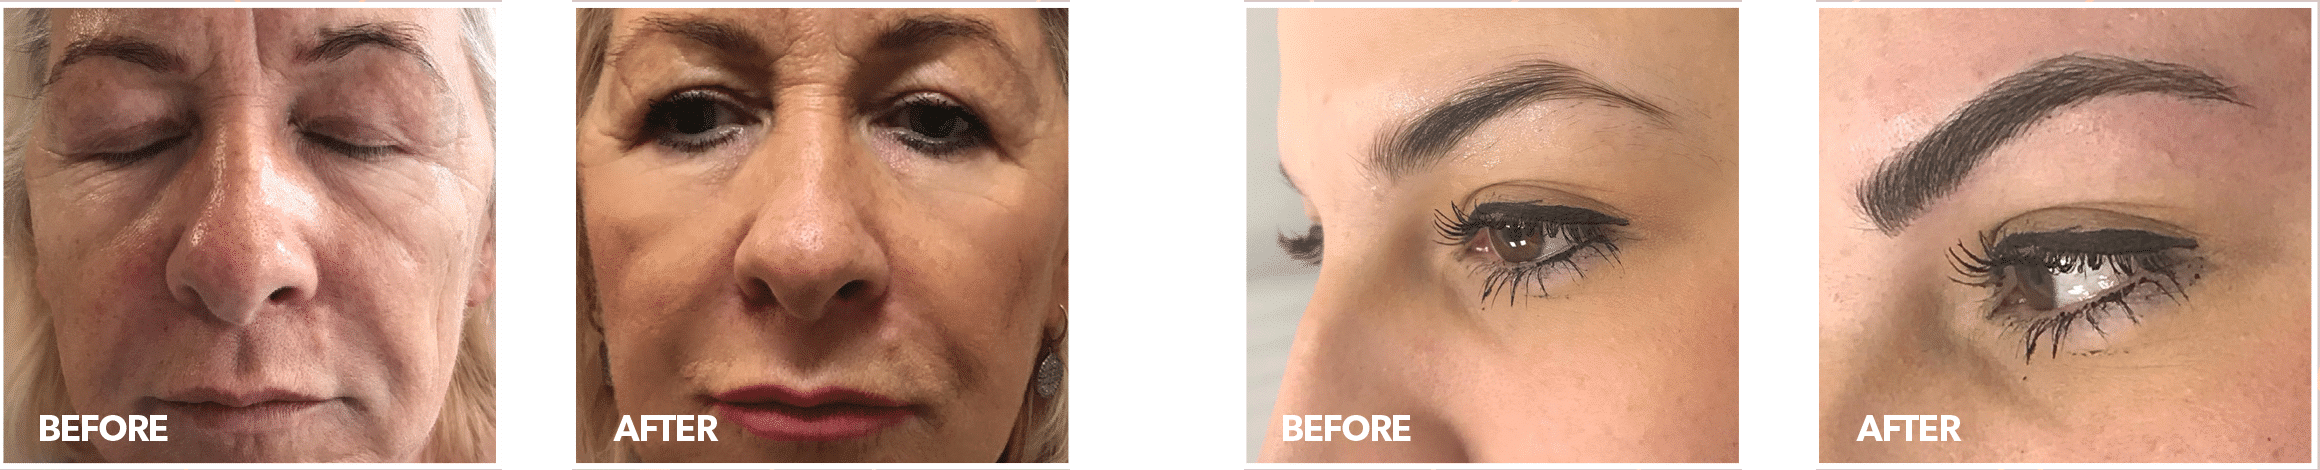 before and after photos of aesthetics treatments